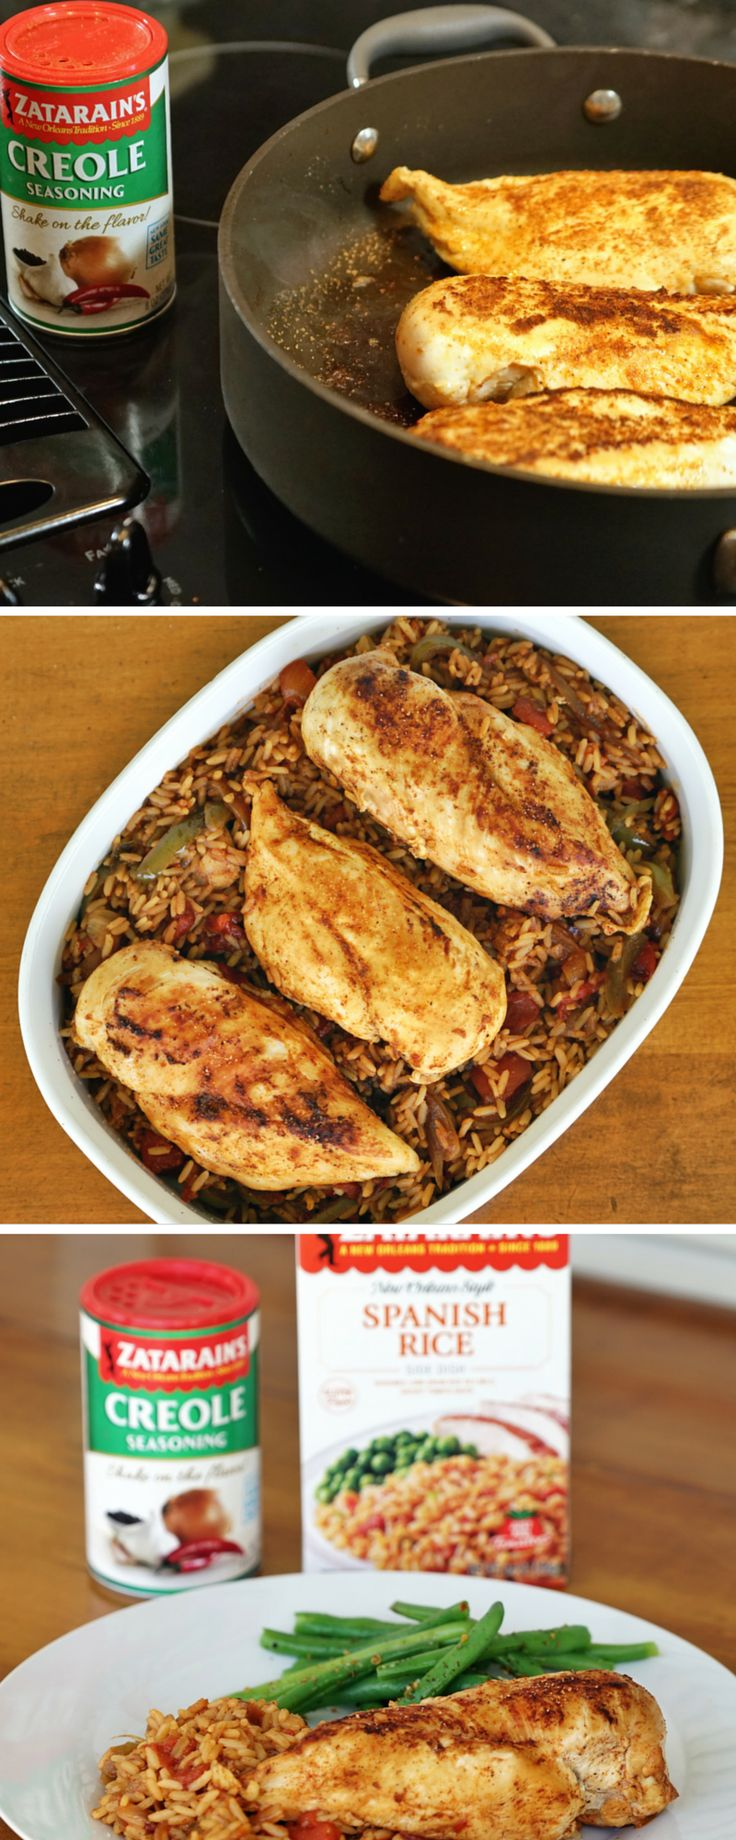 High on flavor and low on prep time, this one-skilled chicken and rice recipe is perfect for any day of the week. Sprinkle Zatarain's Creole Seasoning over chicken and cook in the same skillet with bell pepper, onion, diced tomatoes and Zatarain's Spanish Rice.